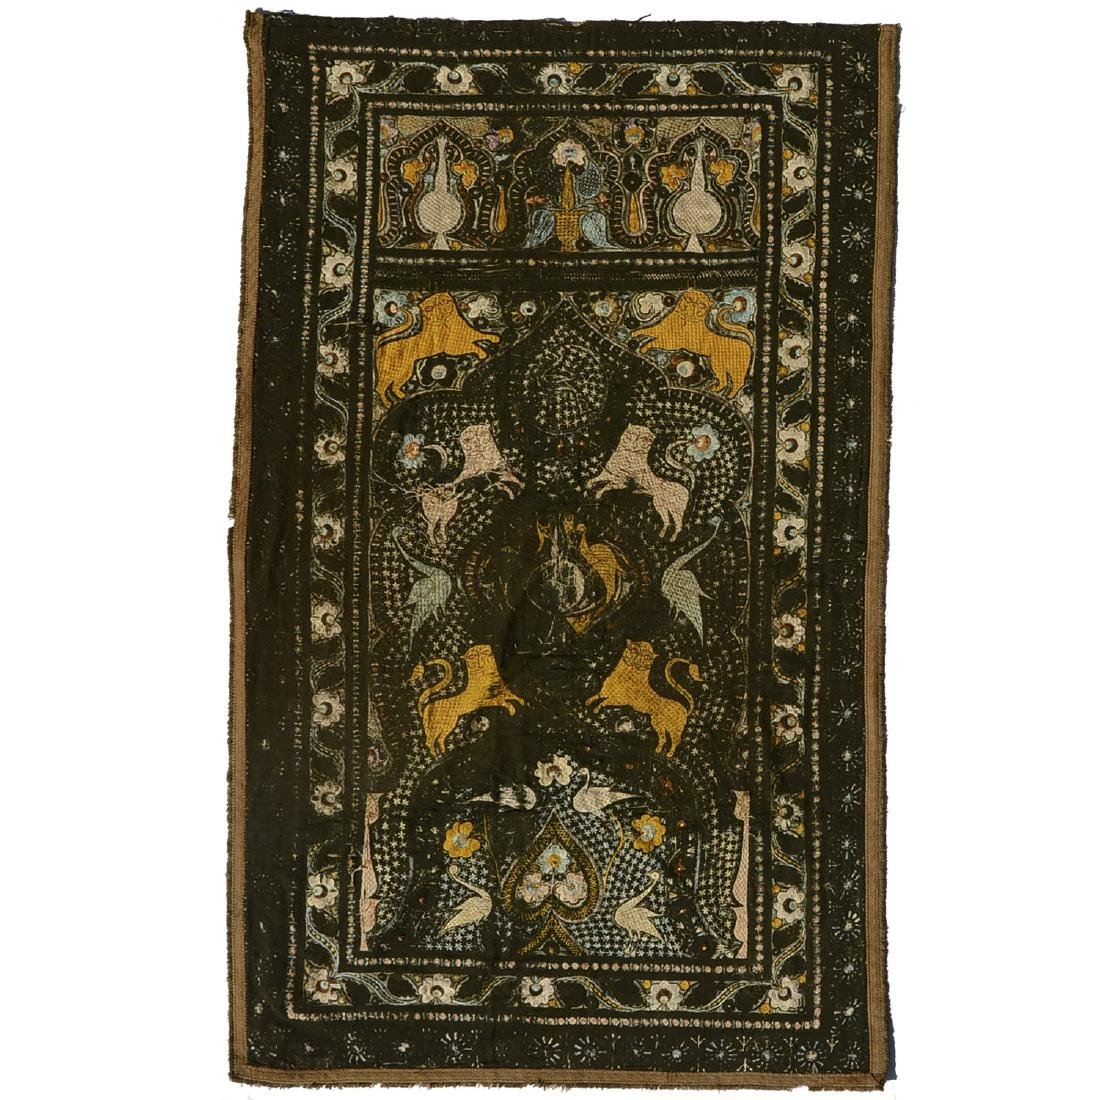 Indo-Persian embroidered silk tapestry